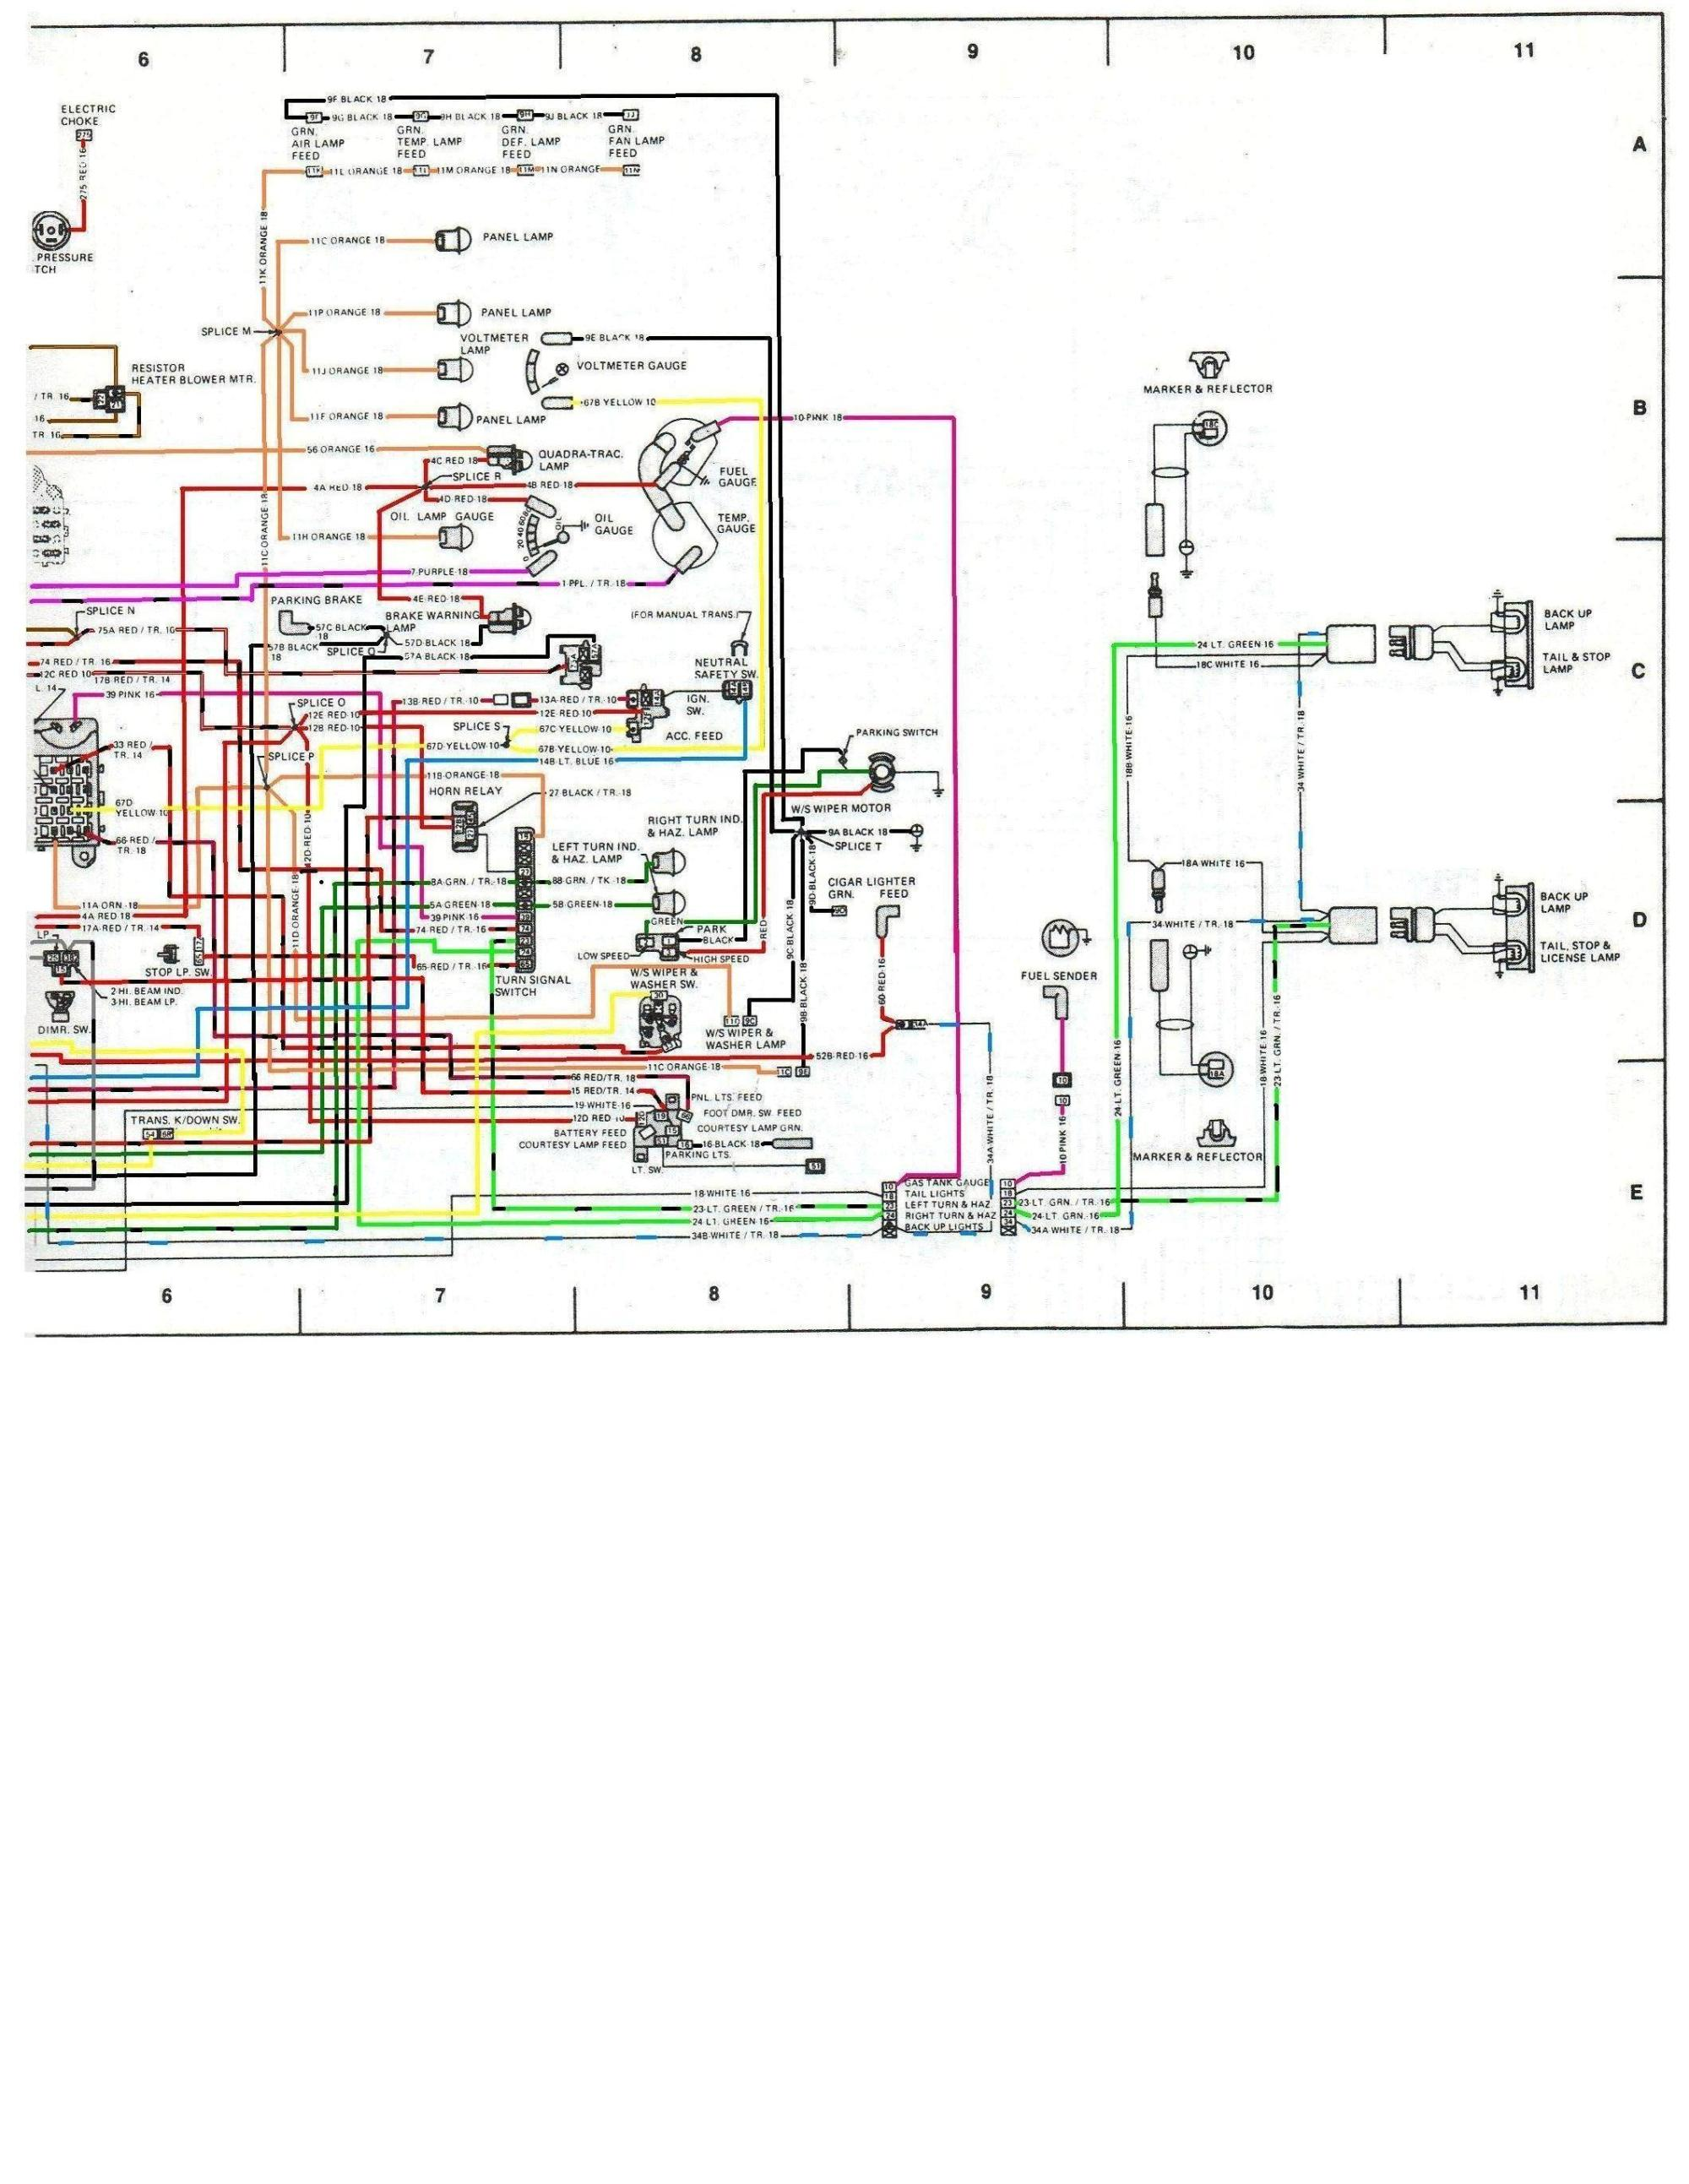 hight resolution of wiring diagram jeep cj7 simple wiring schema jeep wiring diagram 1986 jeep wrangler wiring diagram wiring